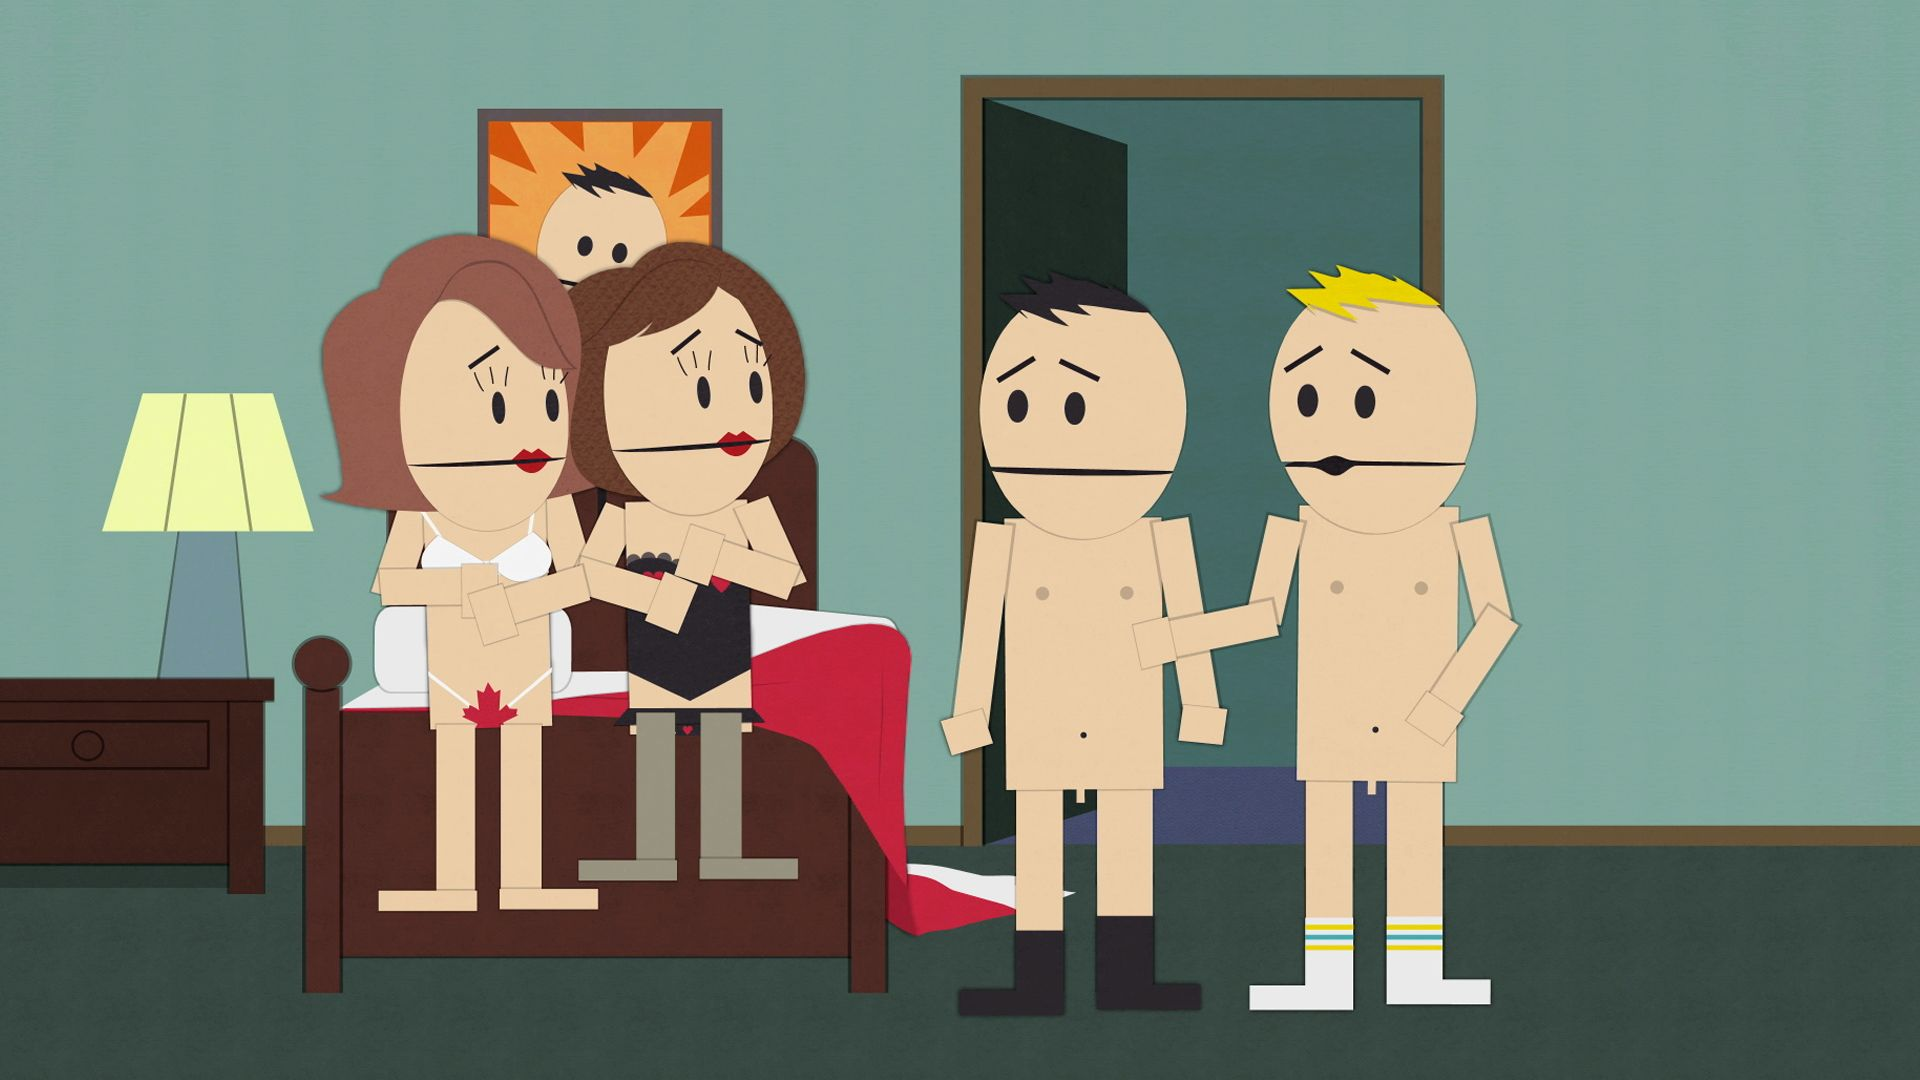 south-park-girls-naked-angelia-jolie-in-sex-action-game